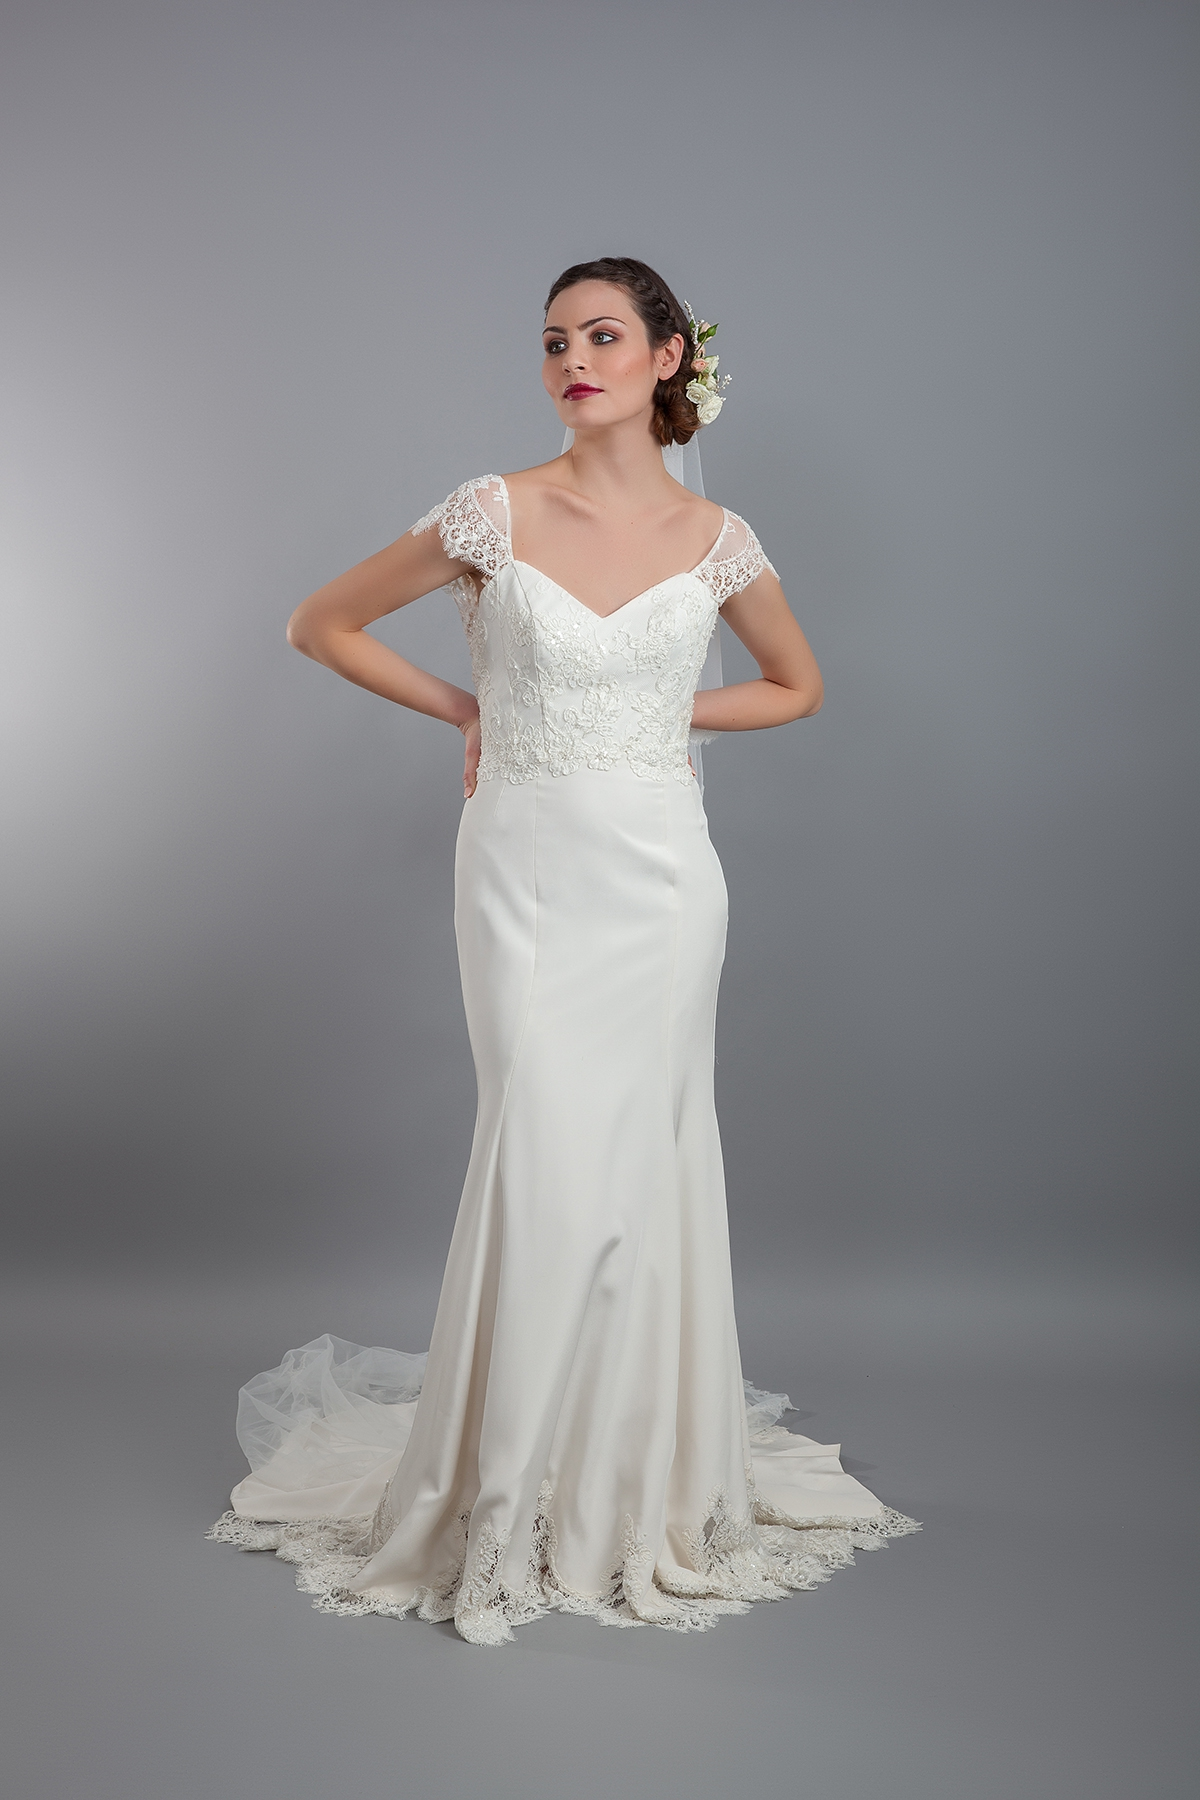 Introducing shanna melville bridal couture timeless elegant the harriet dress by shanna melville ombrellifo Images